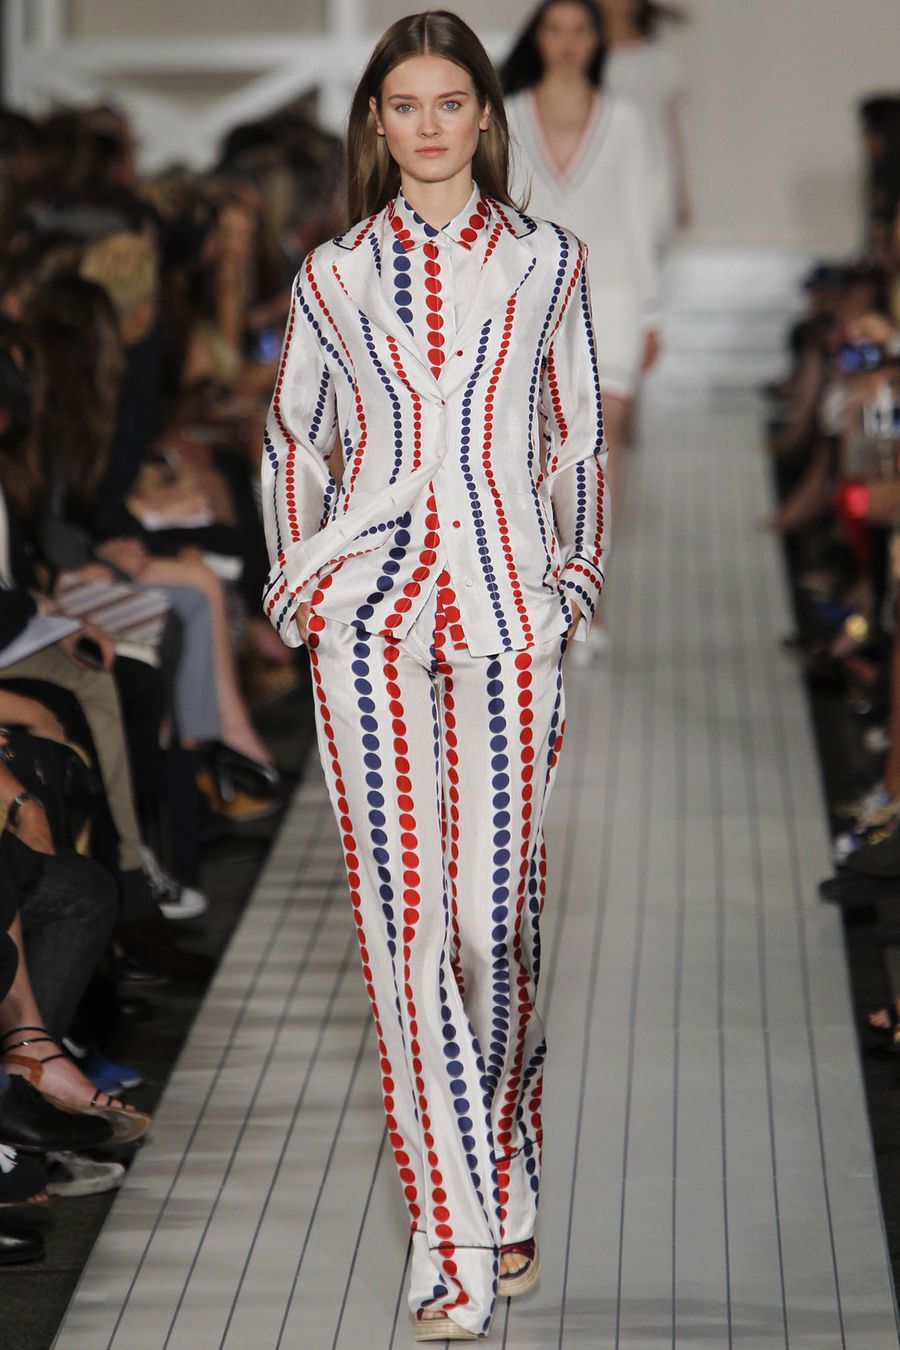 342427cfb093 Tommy Hilfiger Spring 2013 Ready-to-Wear Collection Photos - Vogue